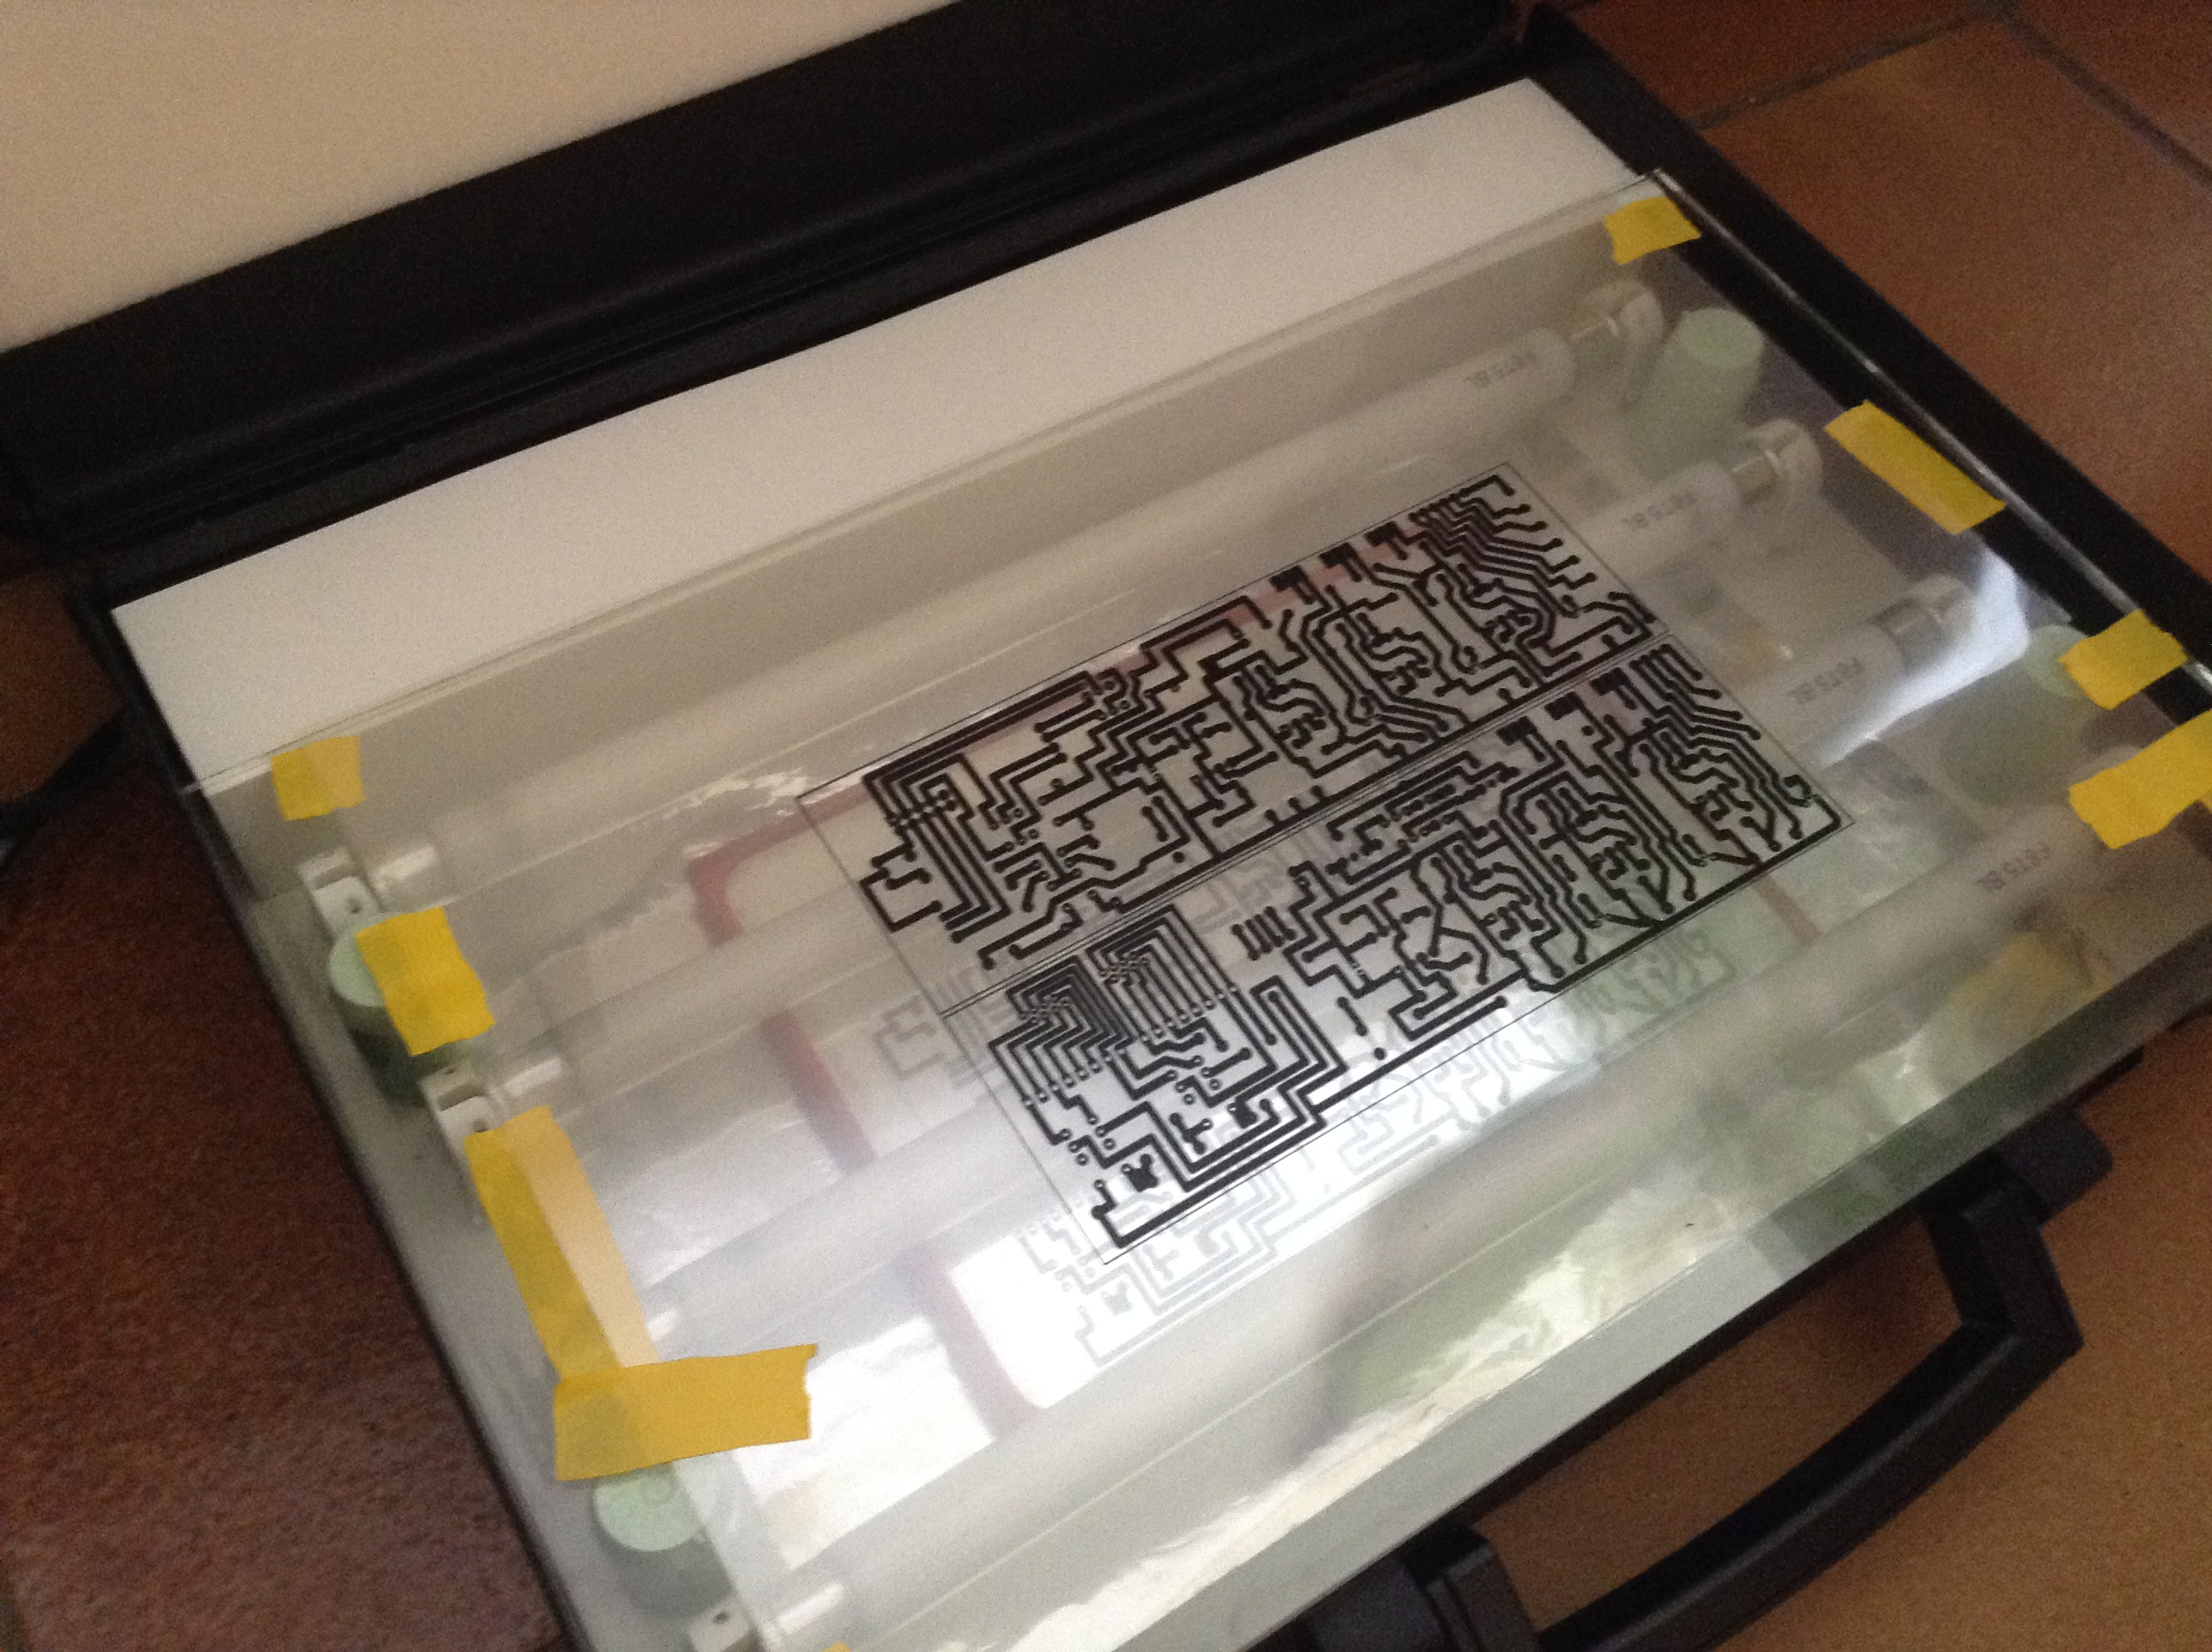 Picture of Exposing the PCB